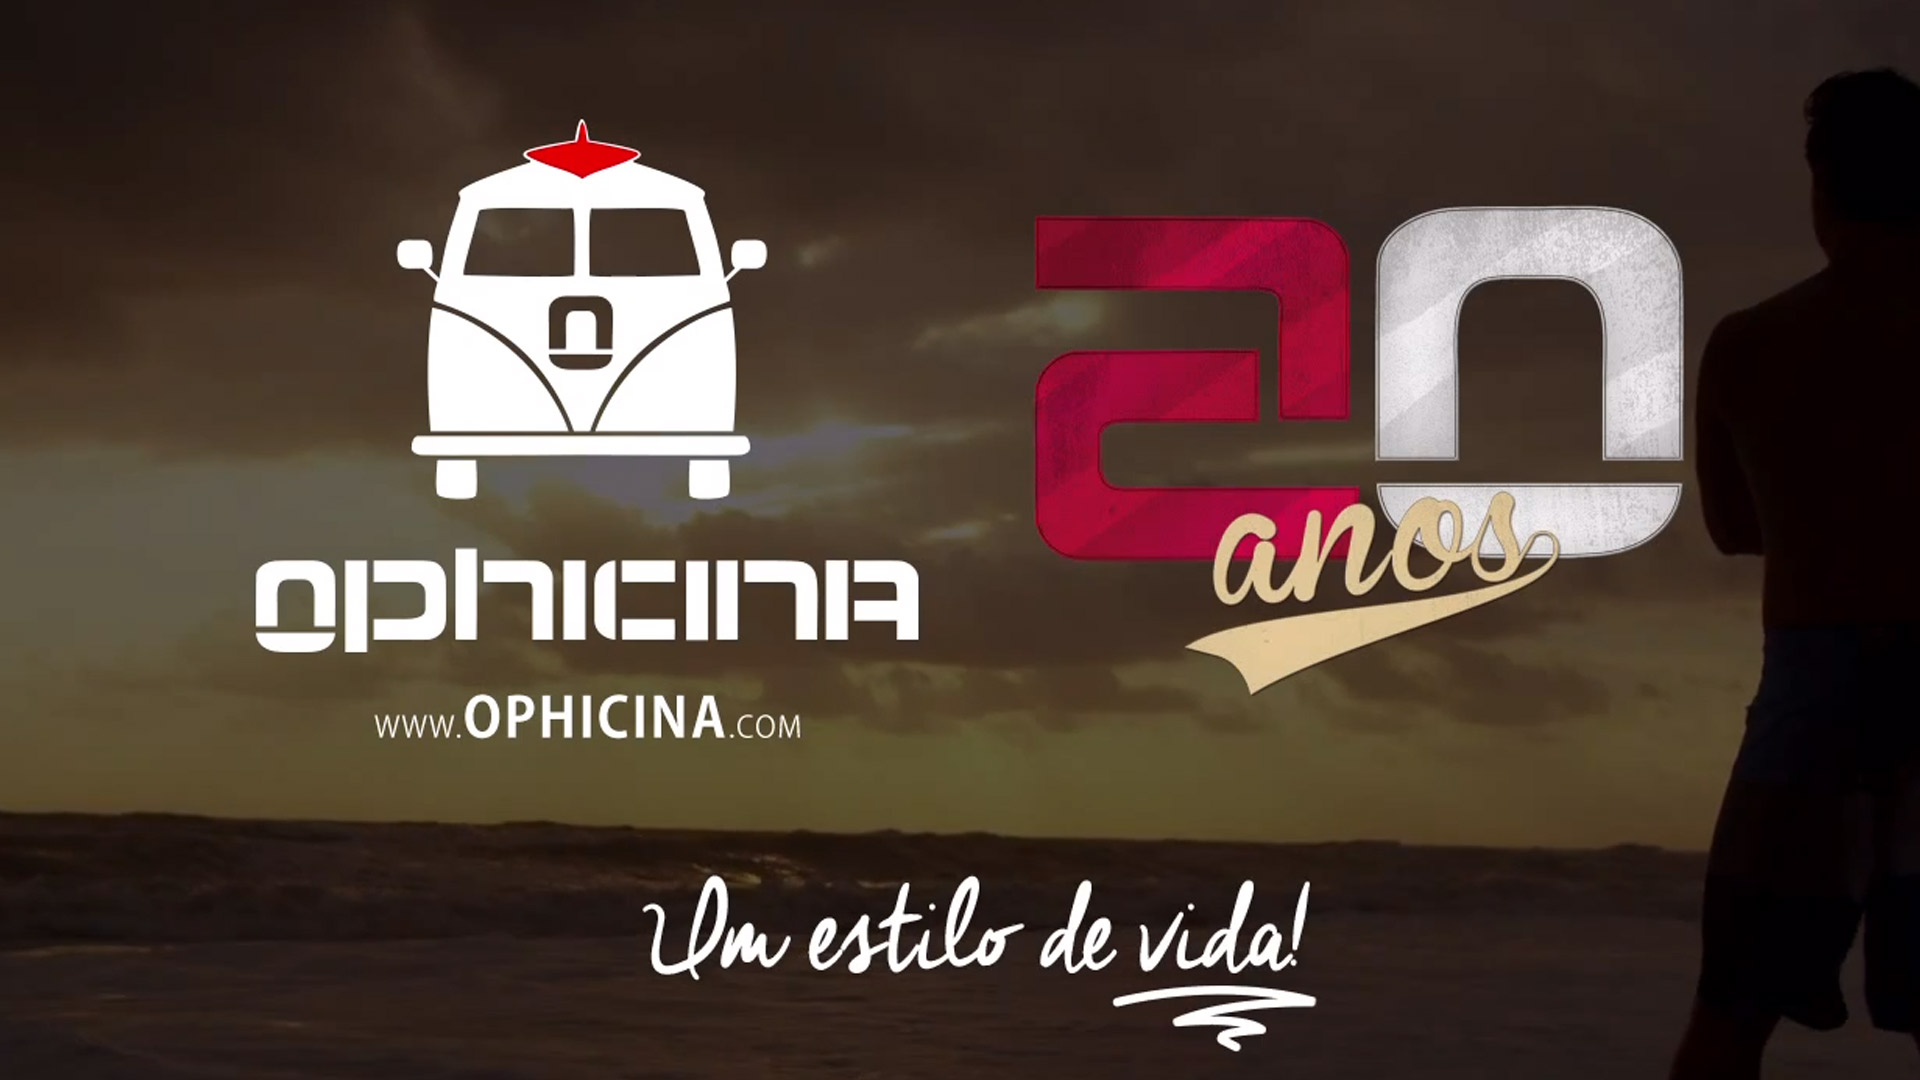 Comercial Ophicina 20 Anos